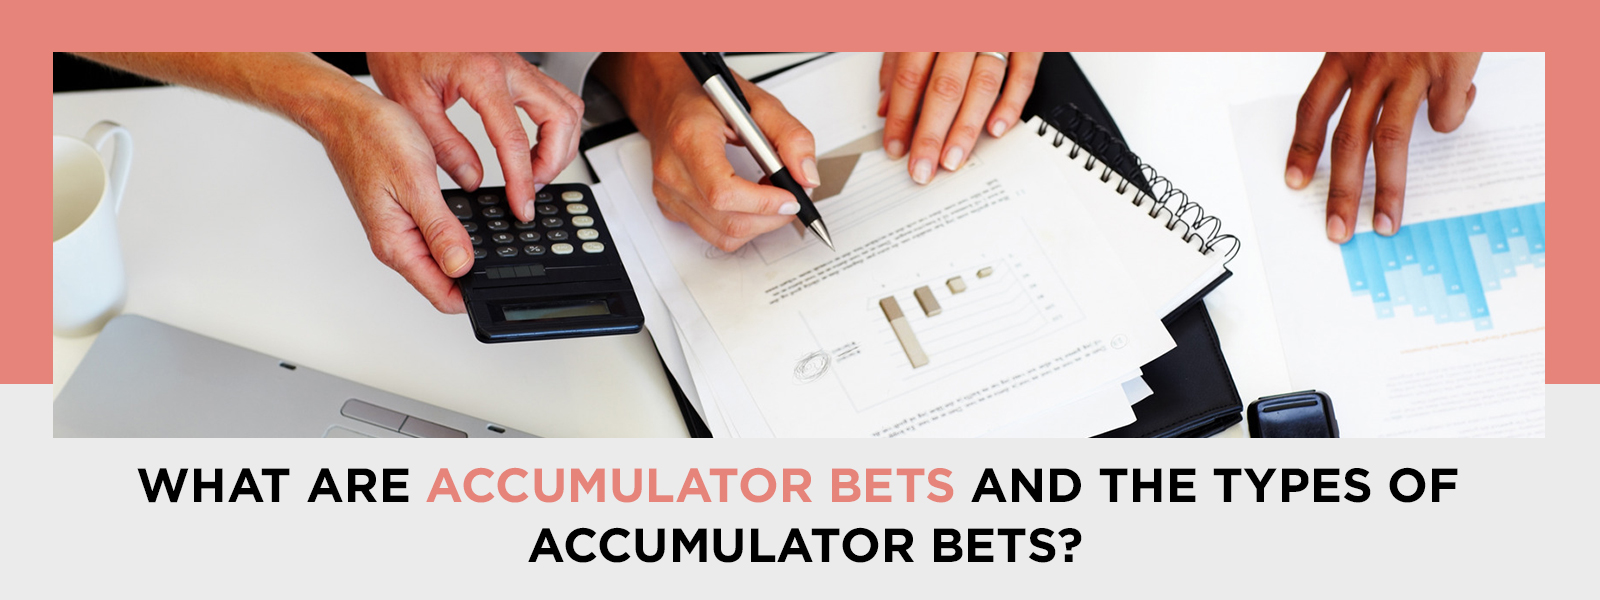 What Are Accumulator Bets And The Types Of Accumulator Bets?